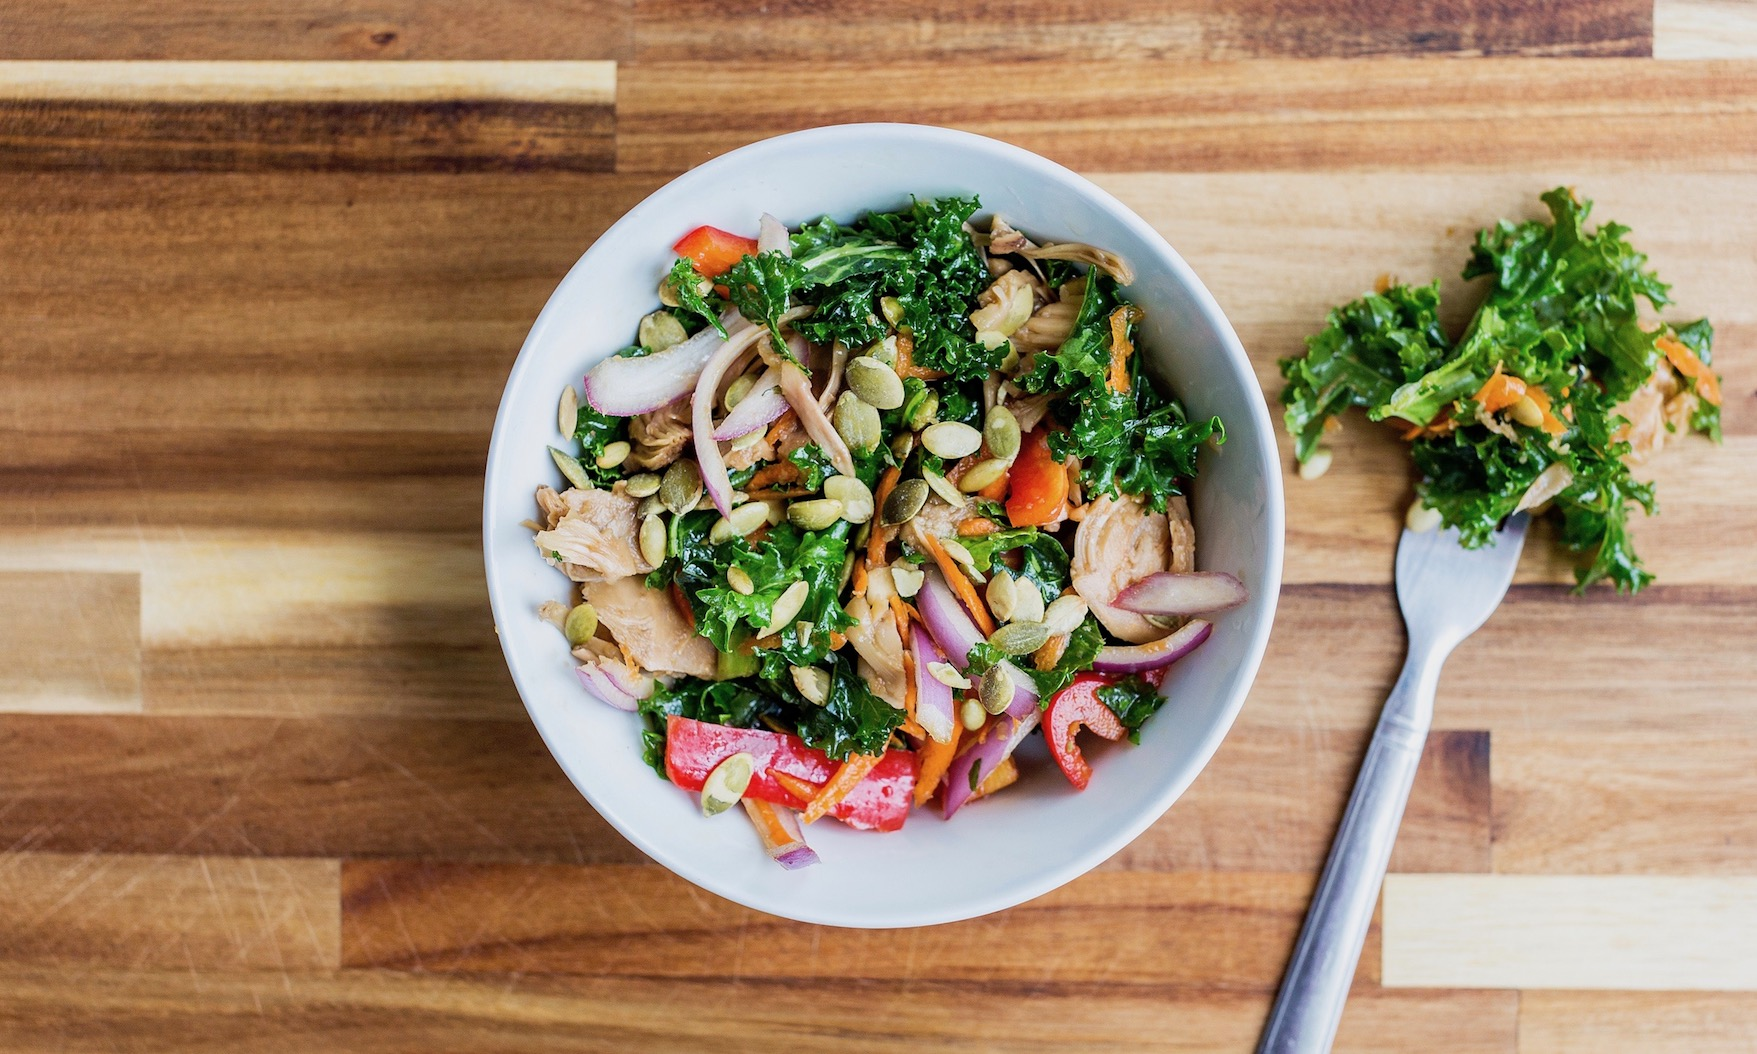 Sweet & Smoky Ginger Sesame Kale Salad